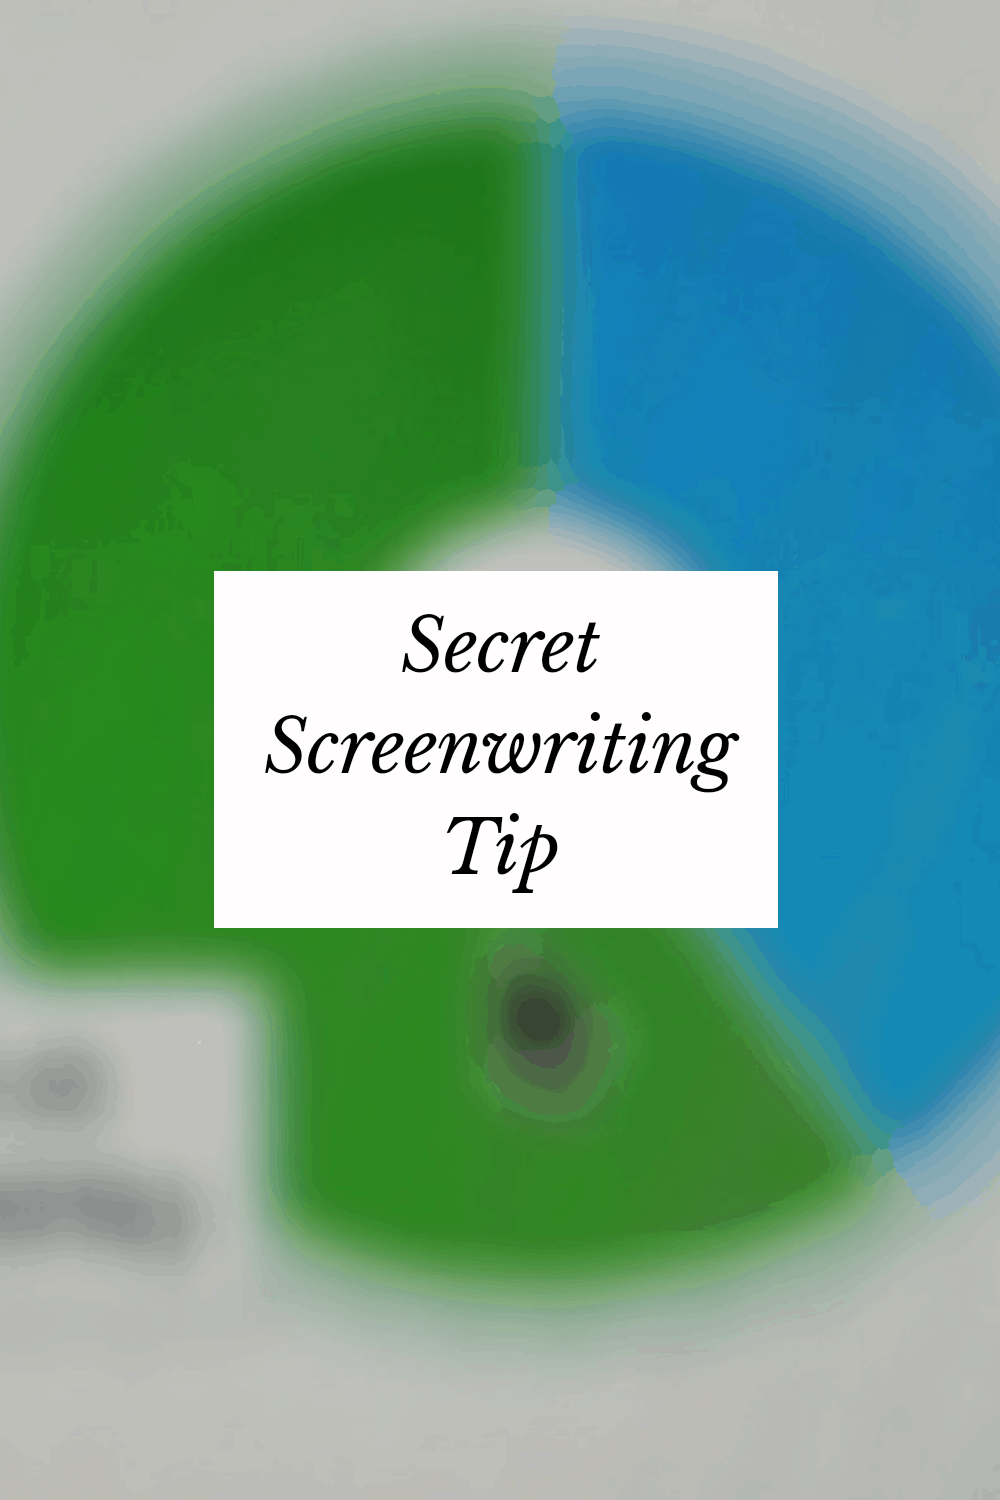 Secret Screenwriting Tip